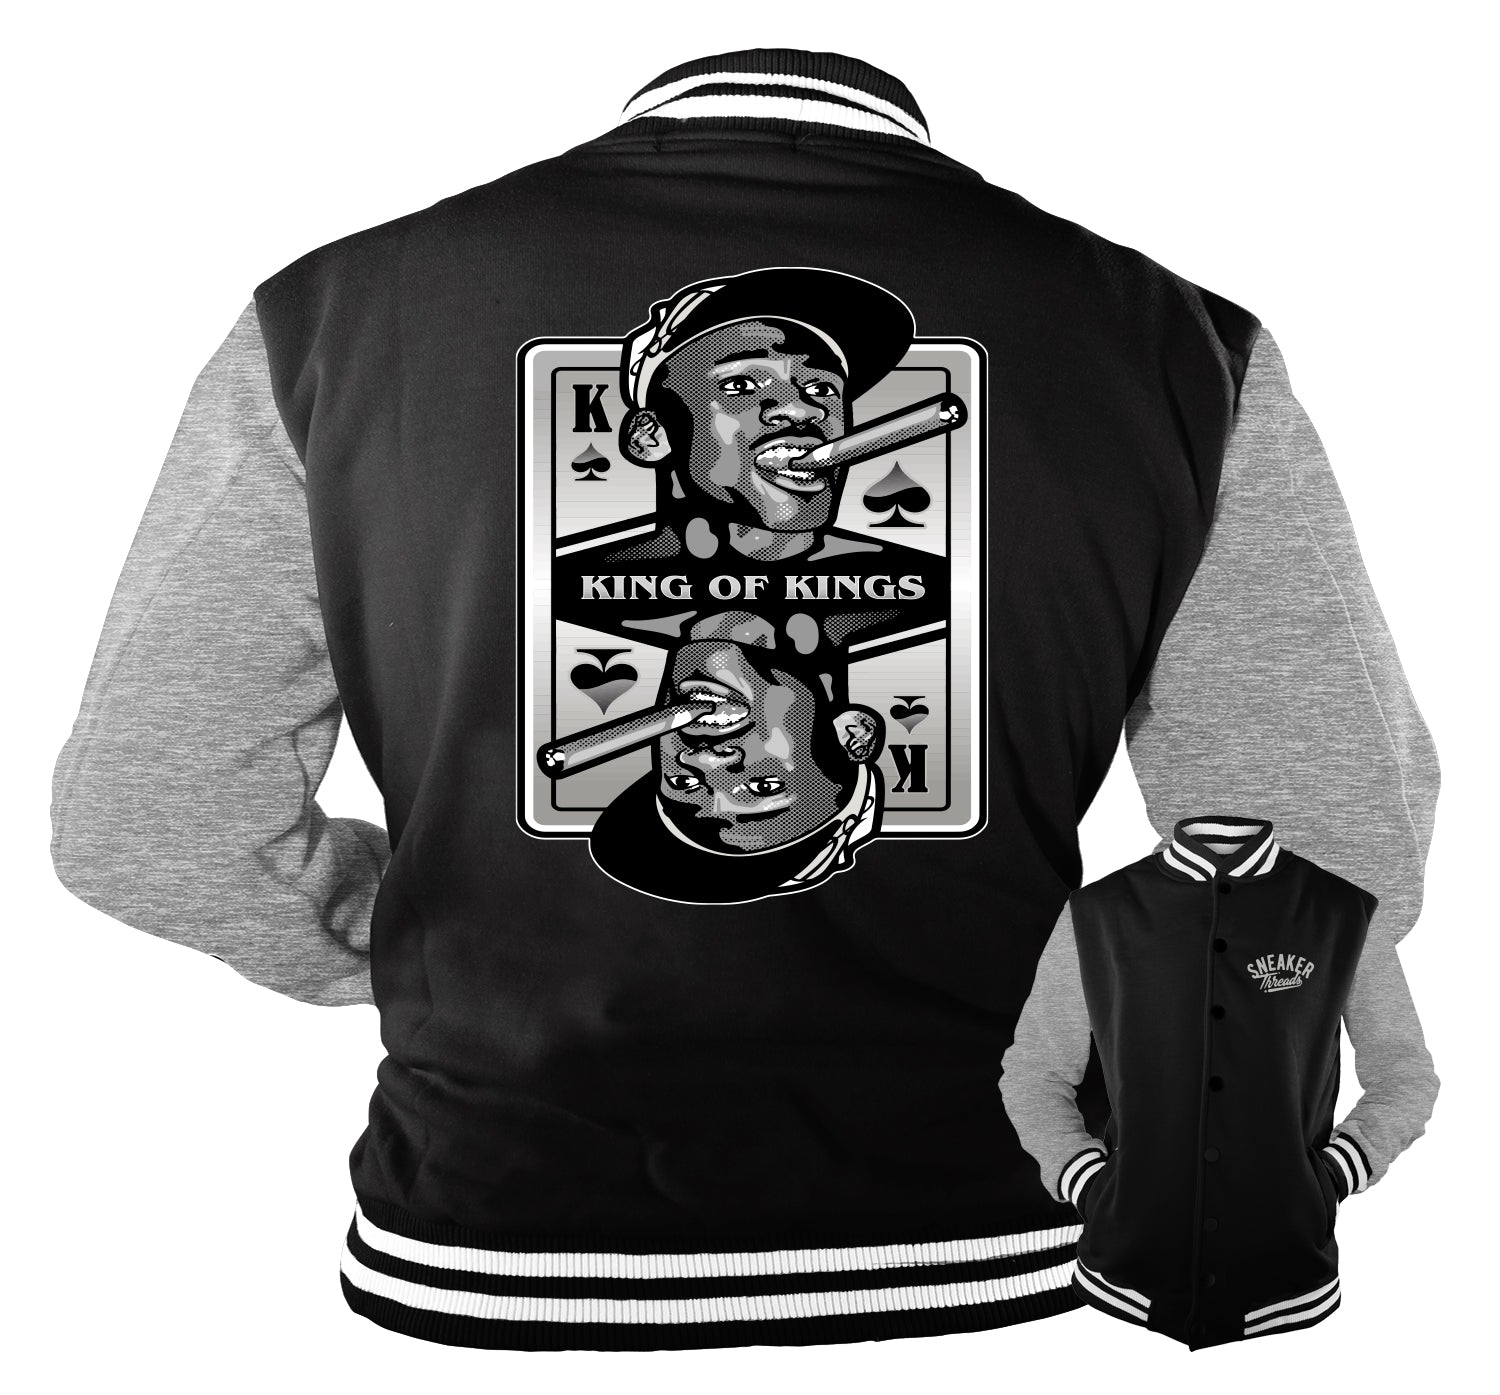 Jordan 1 Silver Toe King Of Kings Jacket